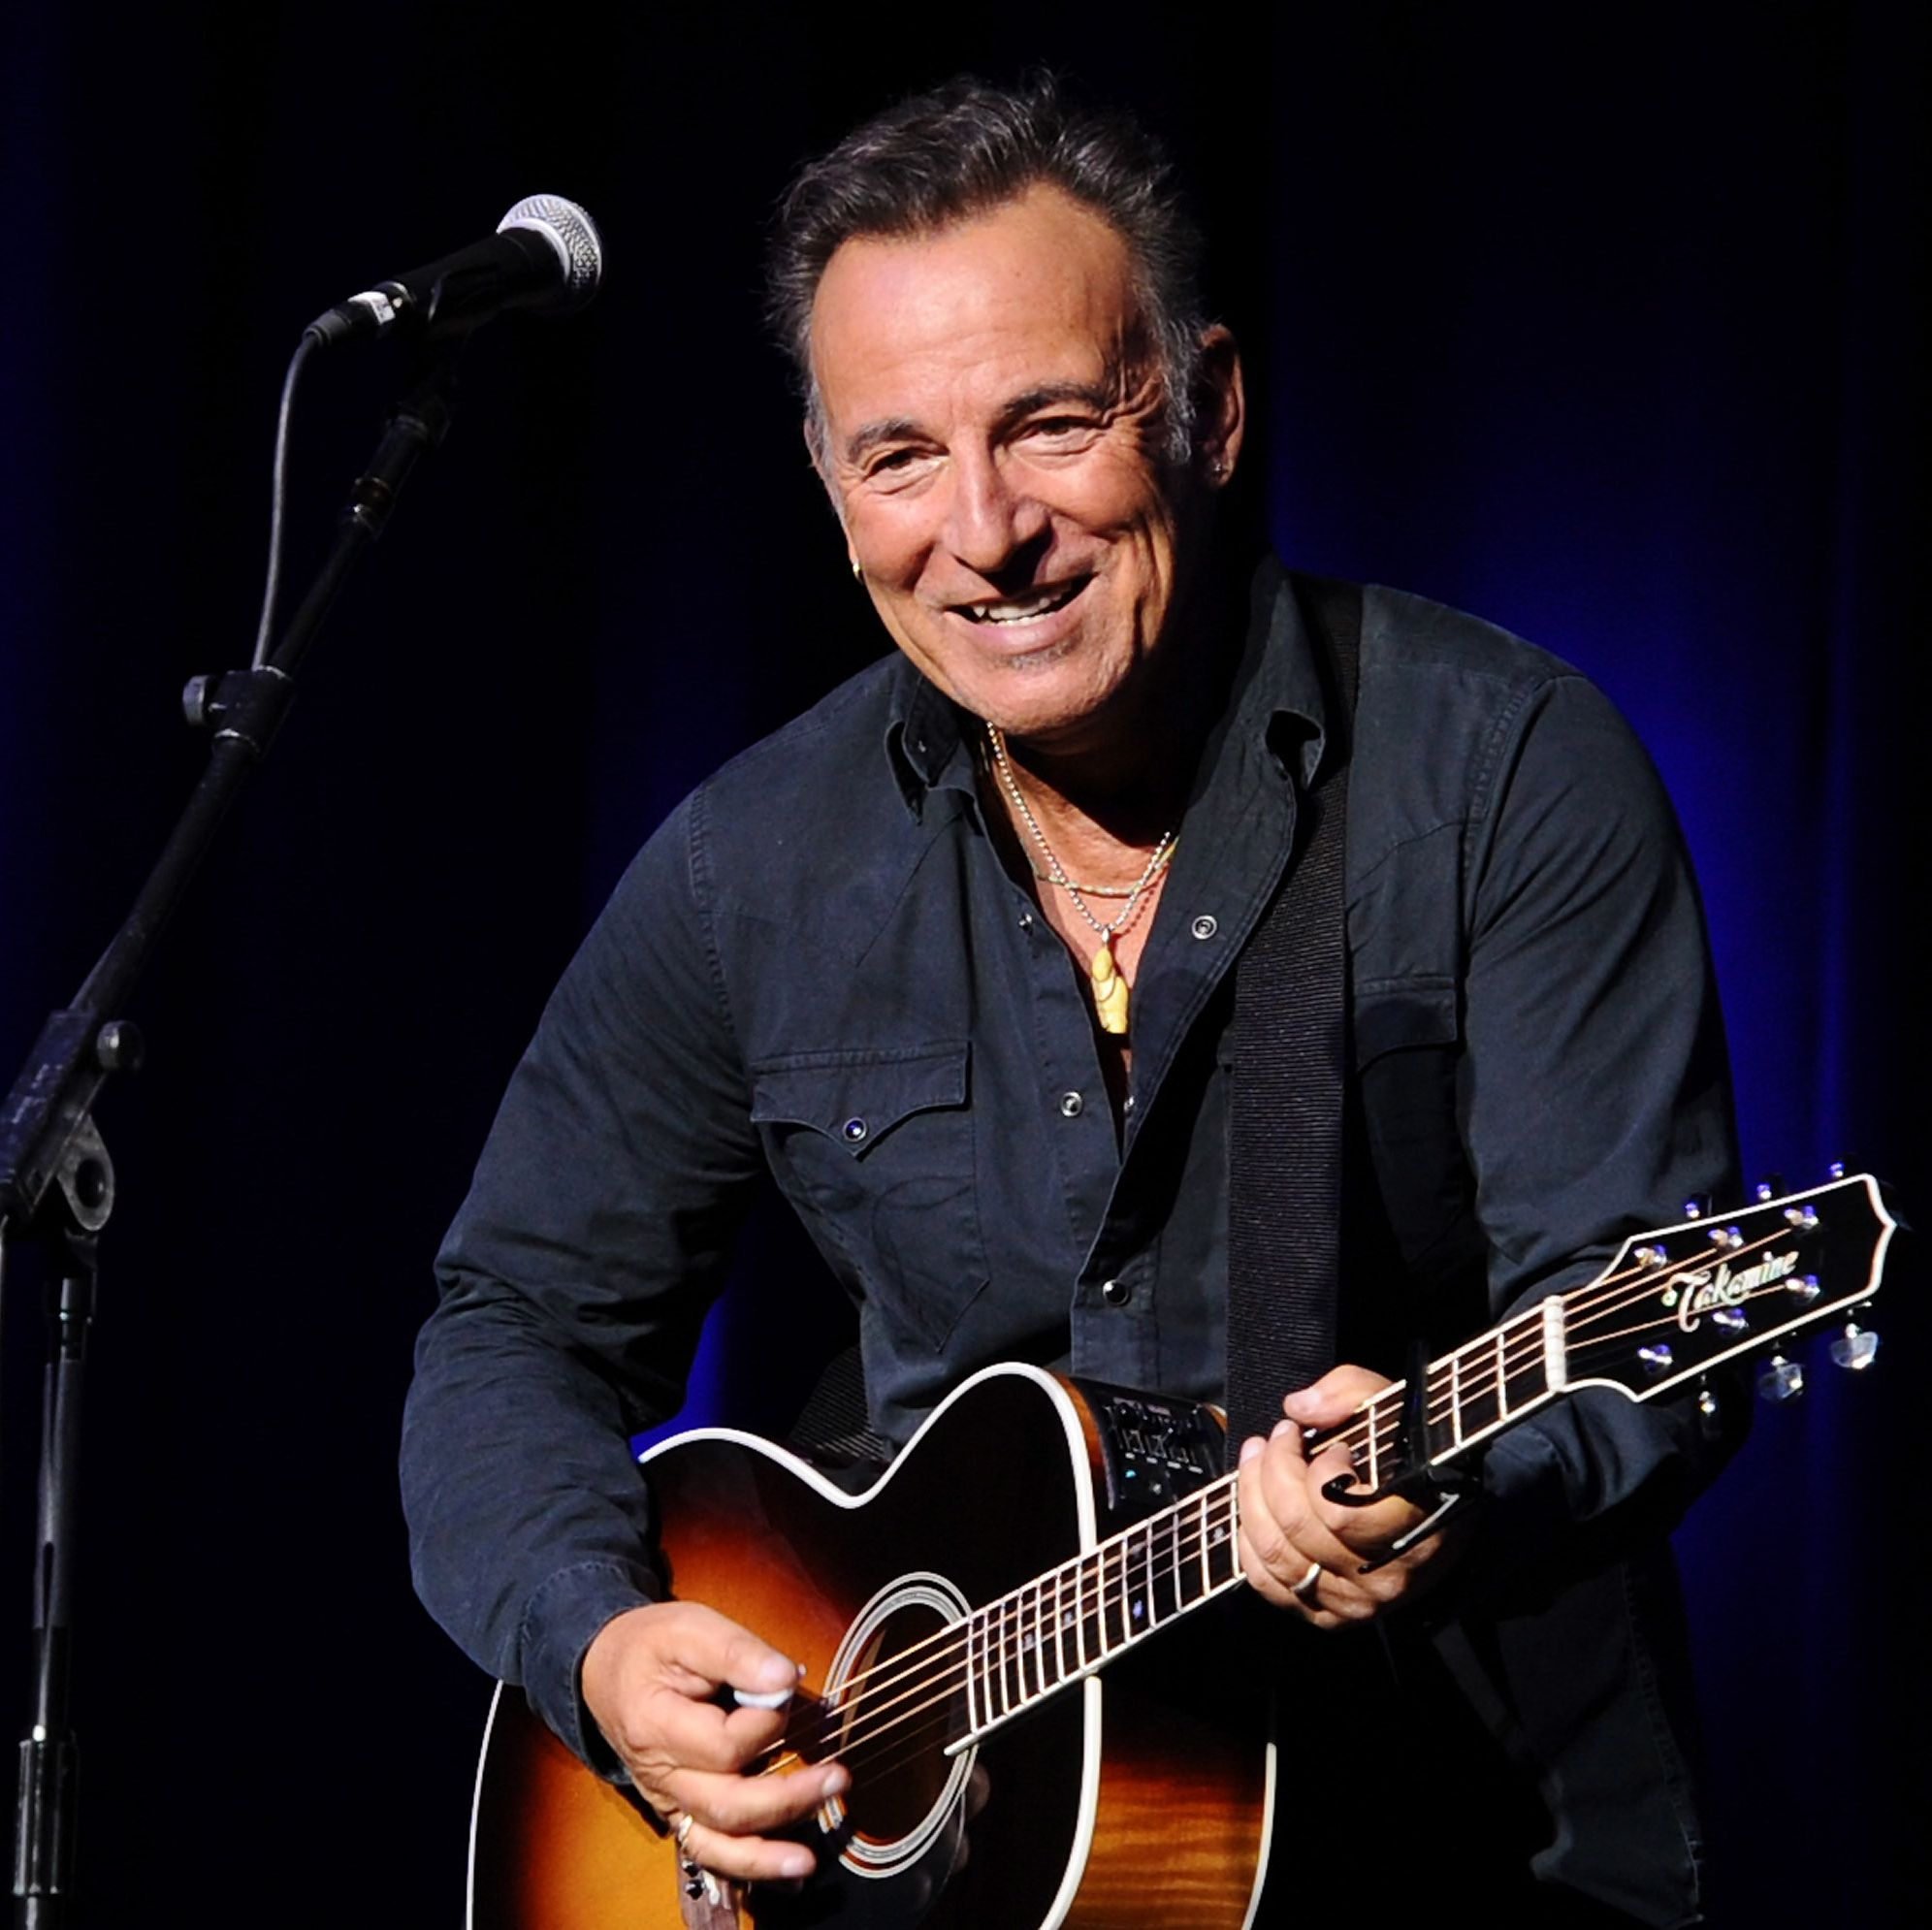 Bruce Springsteen Is Releasing His First Album in Five Years, Western Stars